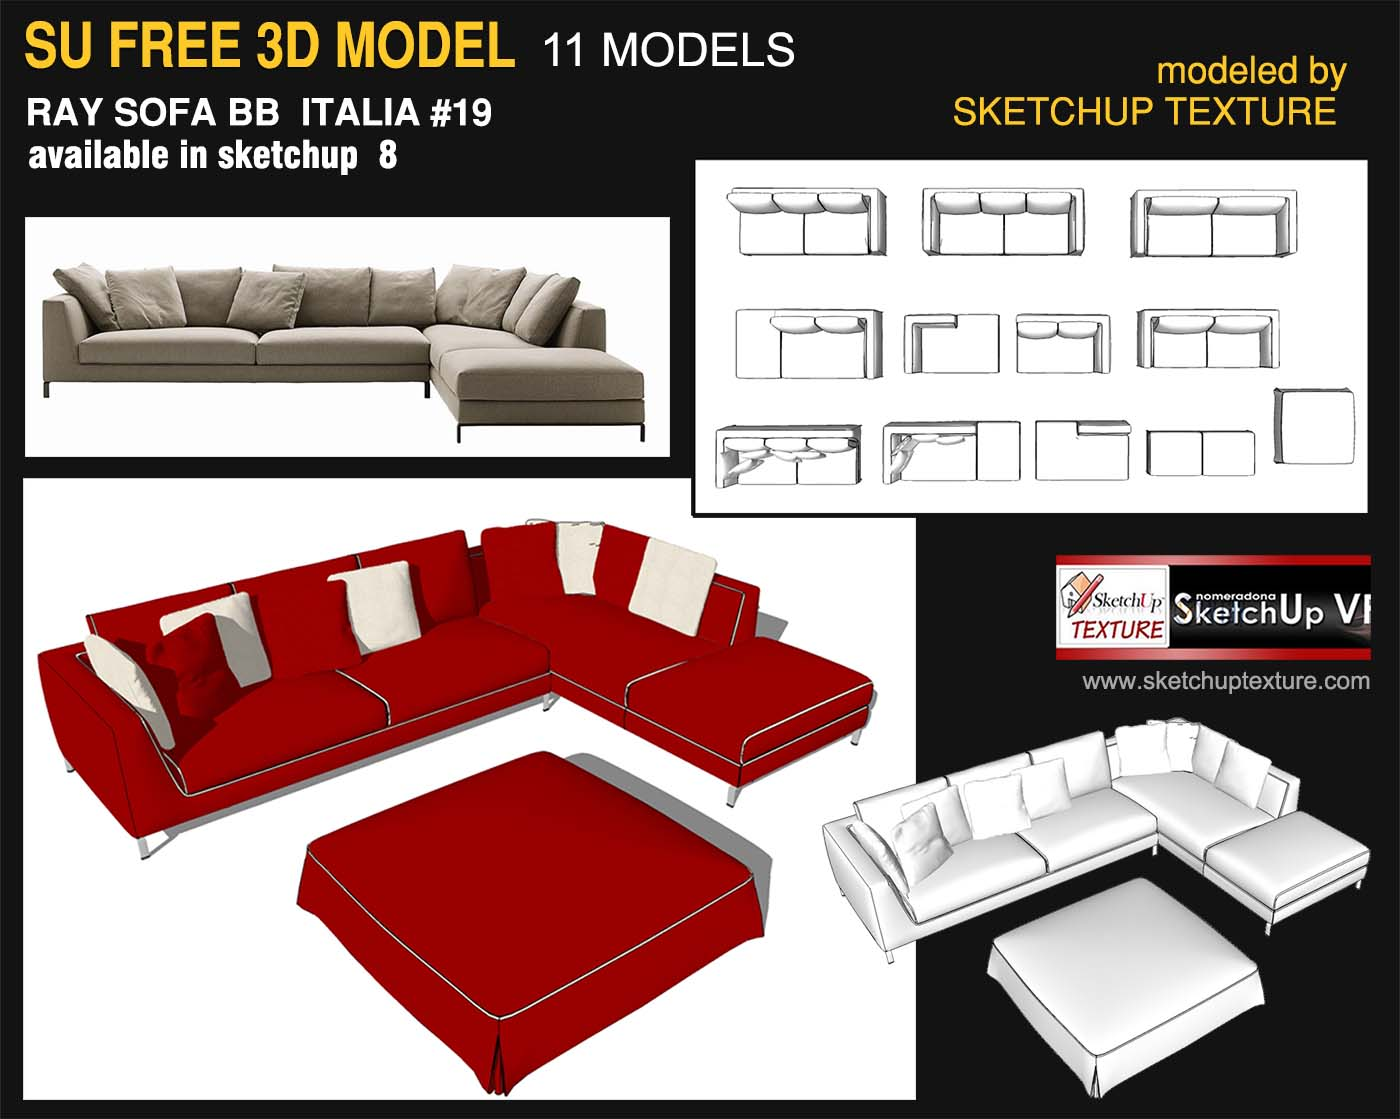 free Sketchup 3d model Ray Sofa BB Italia by skethuptexture.com